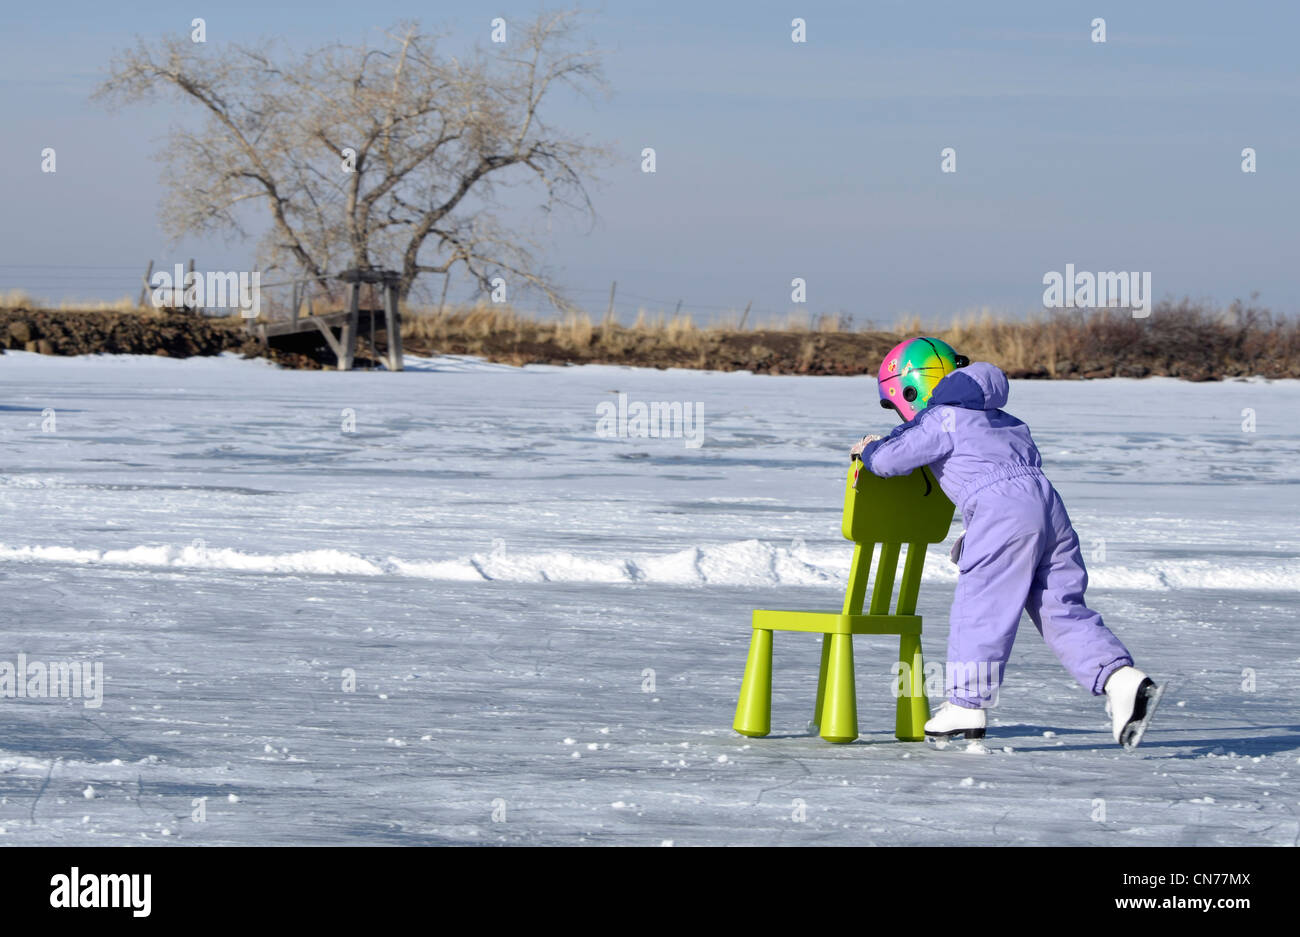 Girl using chair for leverage as she learns to ice skate on a frozen lake. - Stock Image